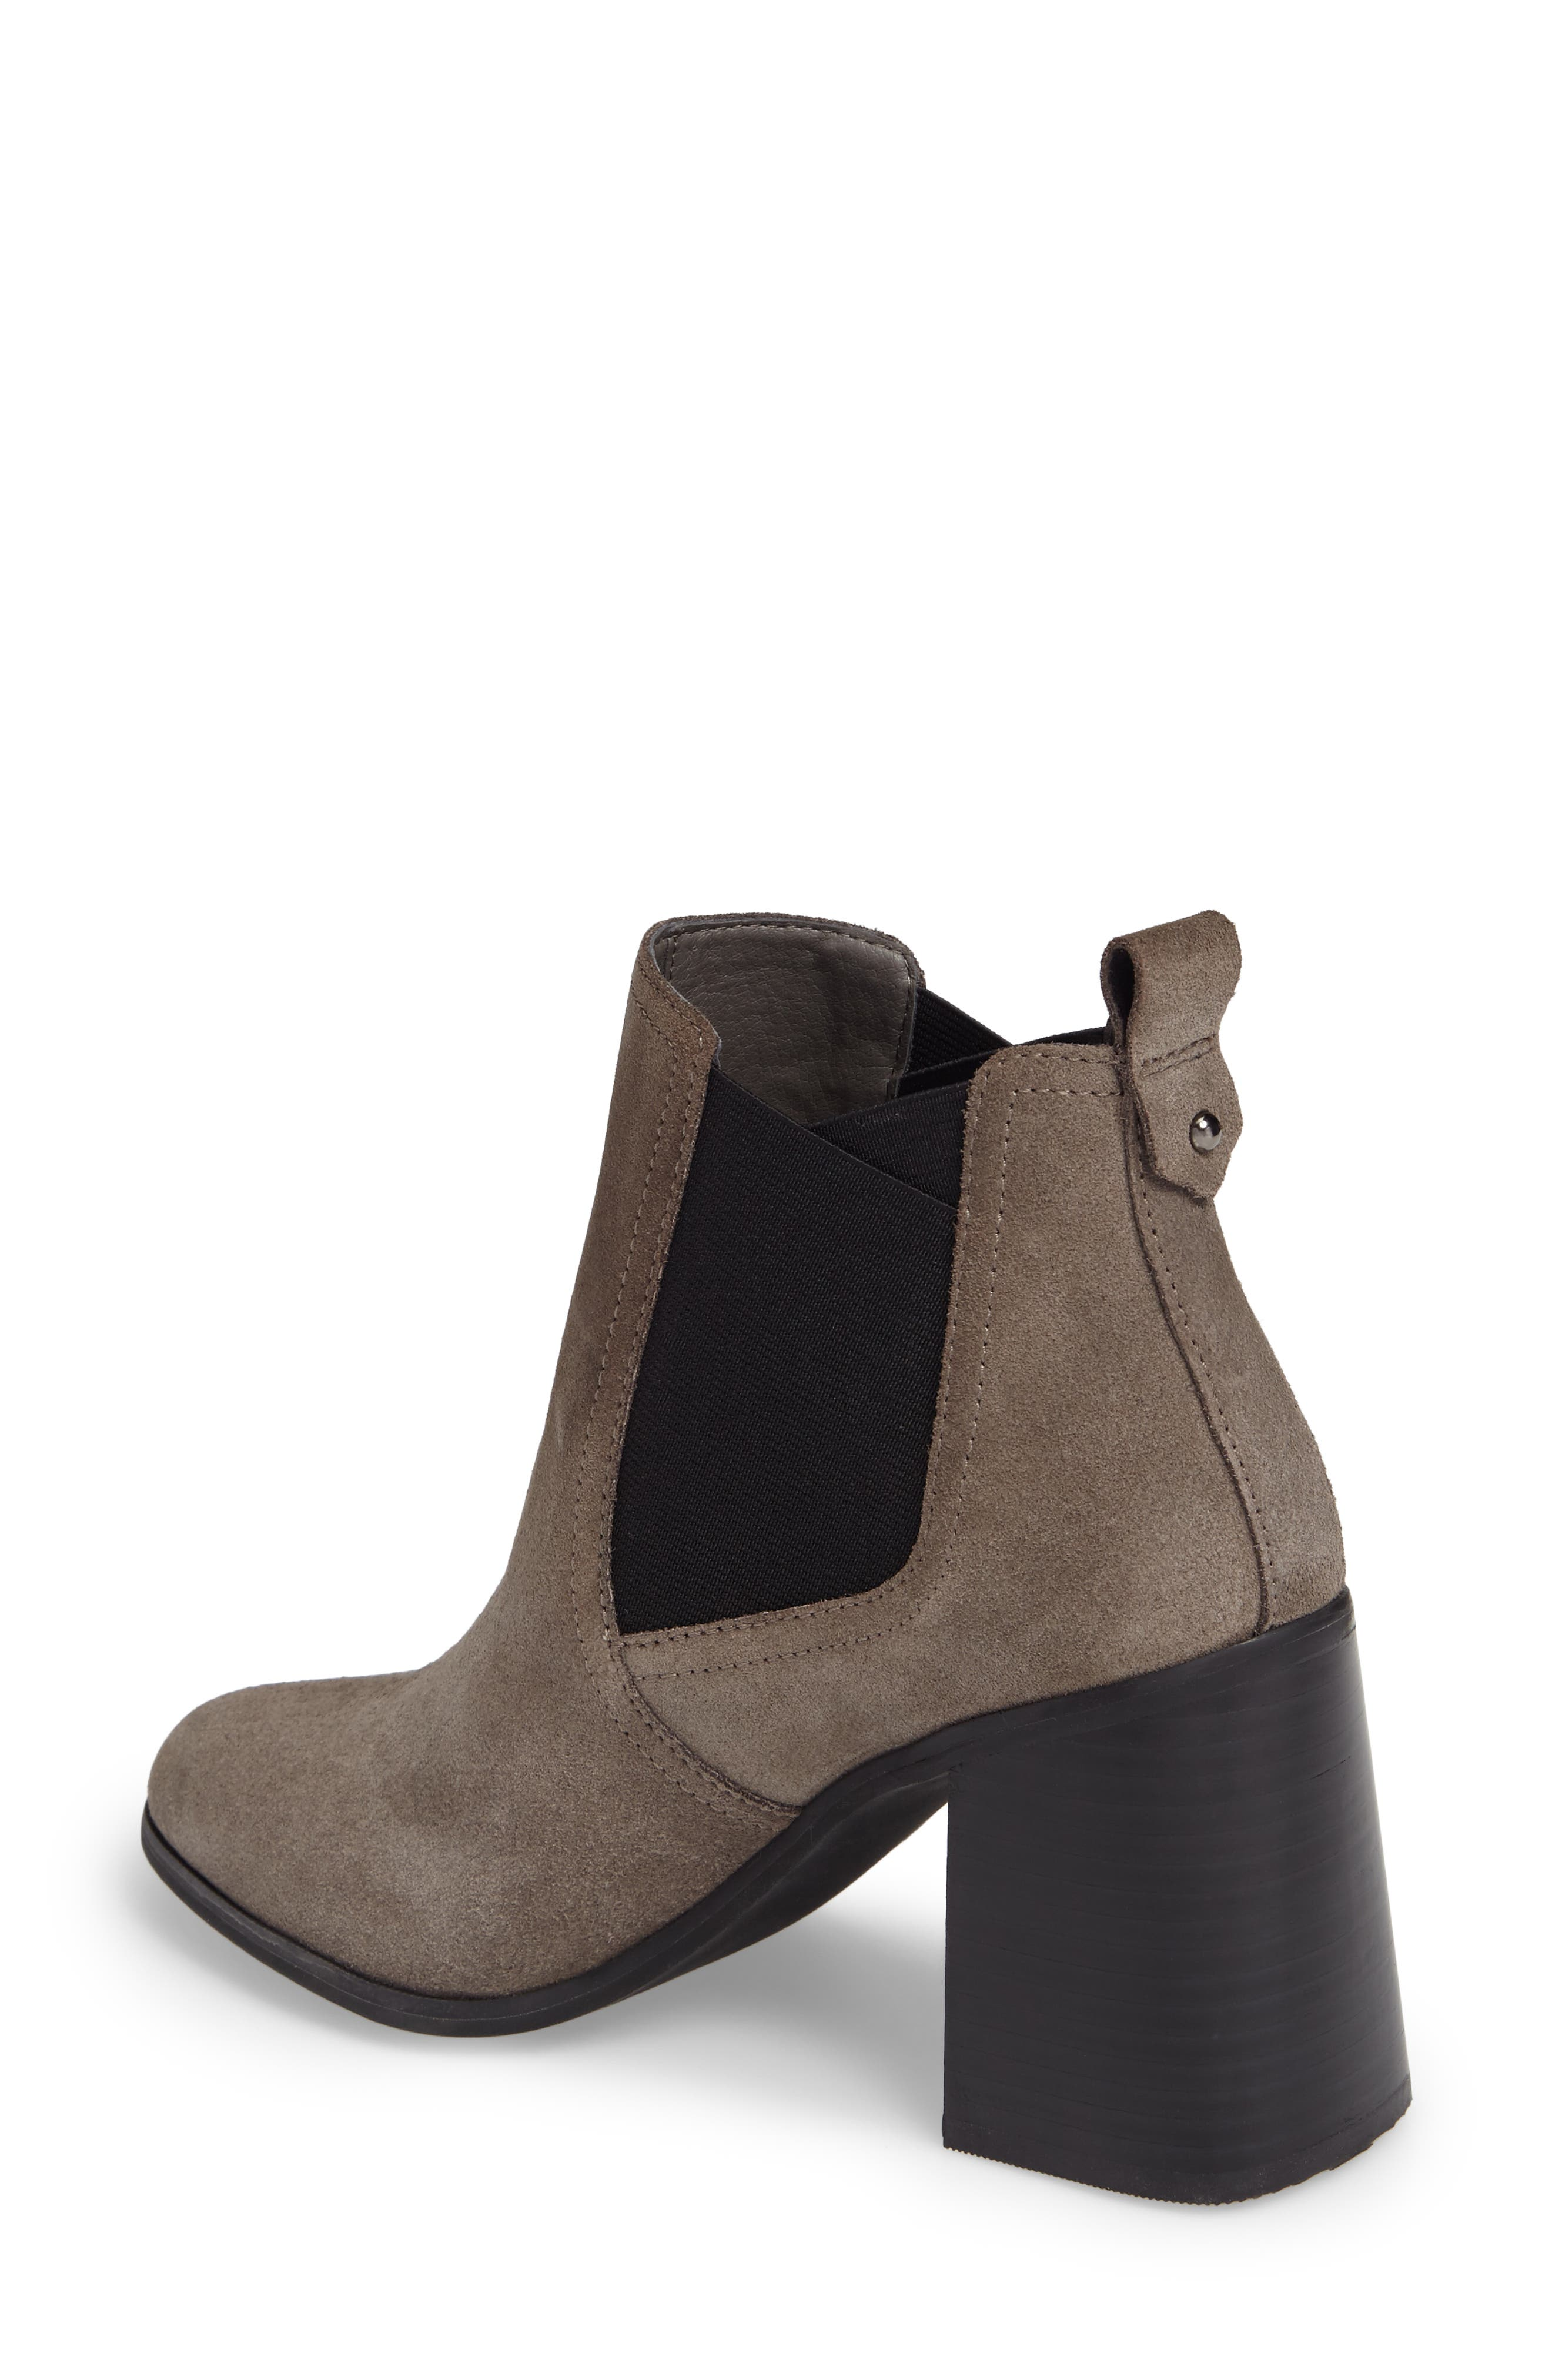 Quinn Flared Heel Chelsea Bootie,                             Alternate thumbnail 8, color,